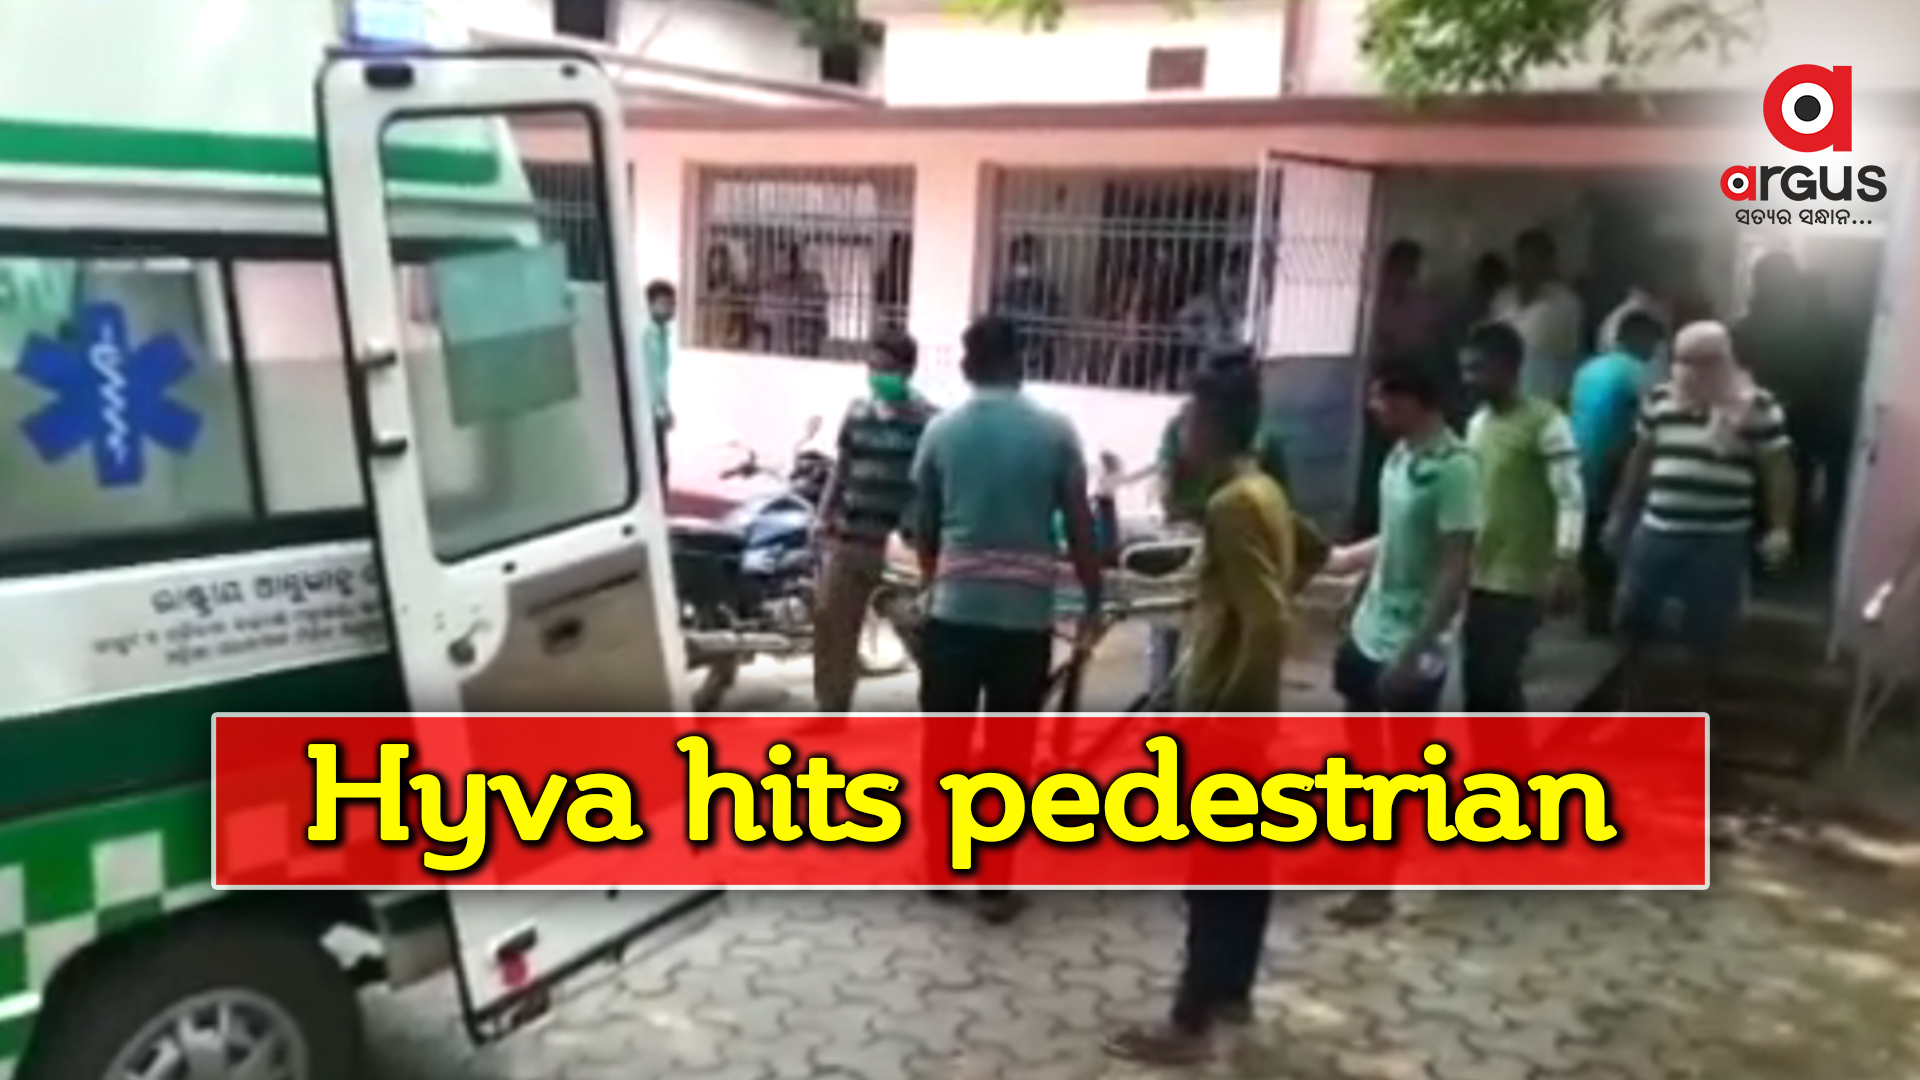 Pedestrian critical after being hit by hyva in Keonjhar